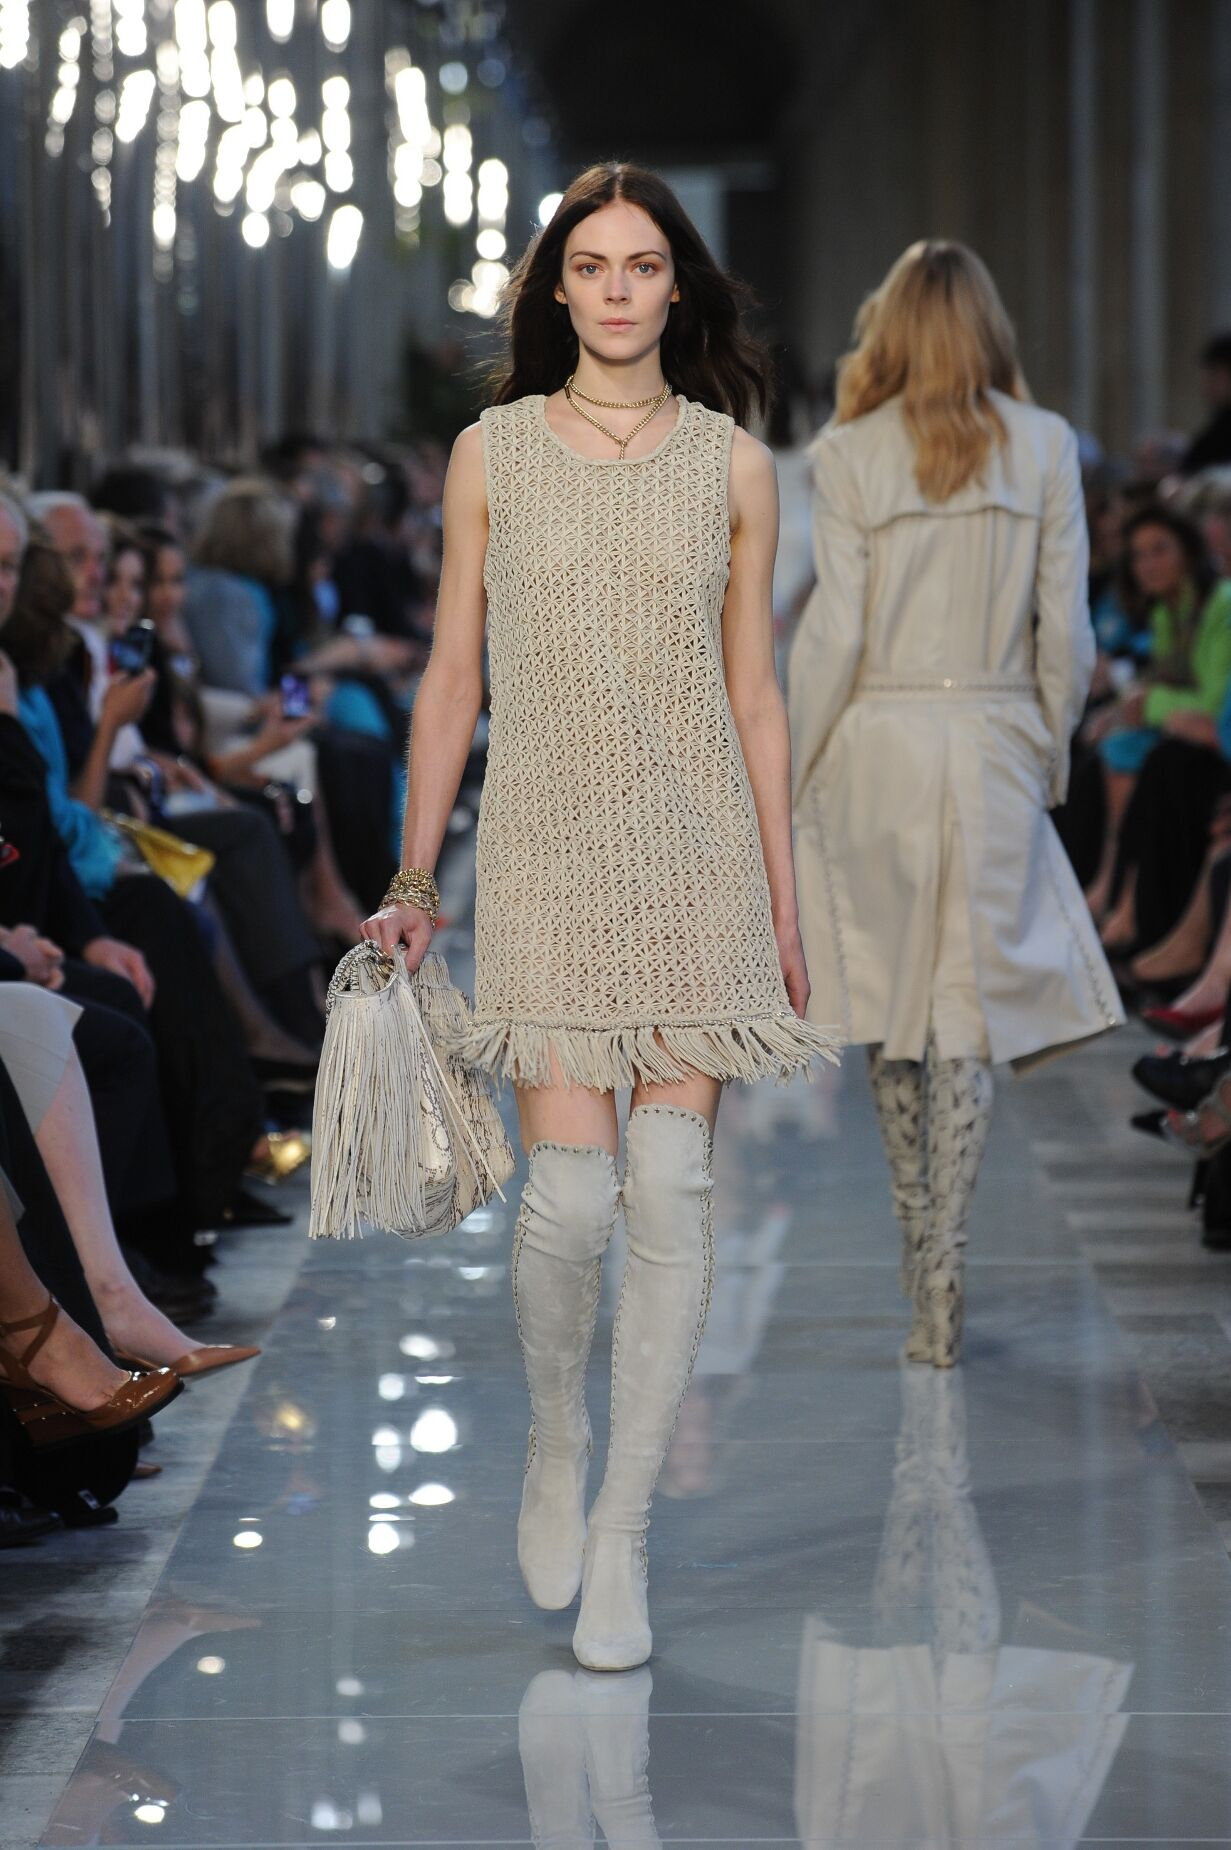 Salvatore Ferragamo Spring Summer 2013 Women's Resort Collection - Louvre